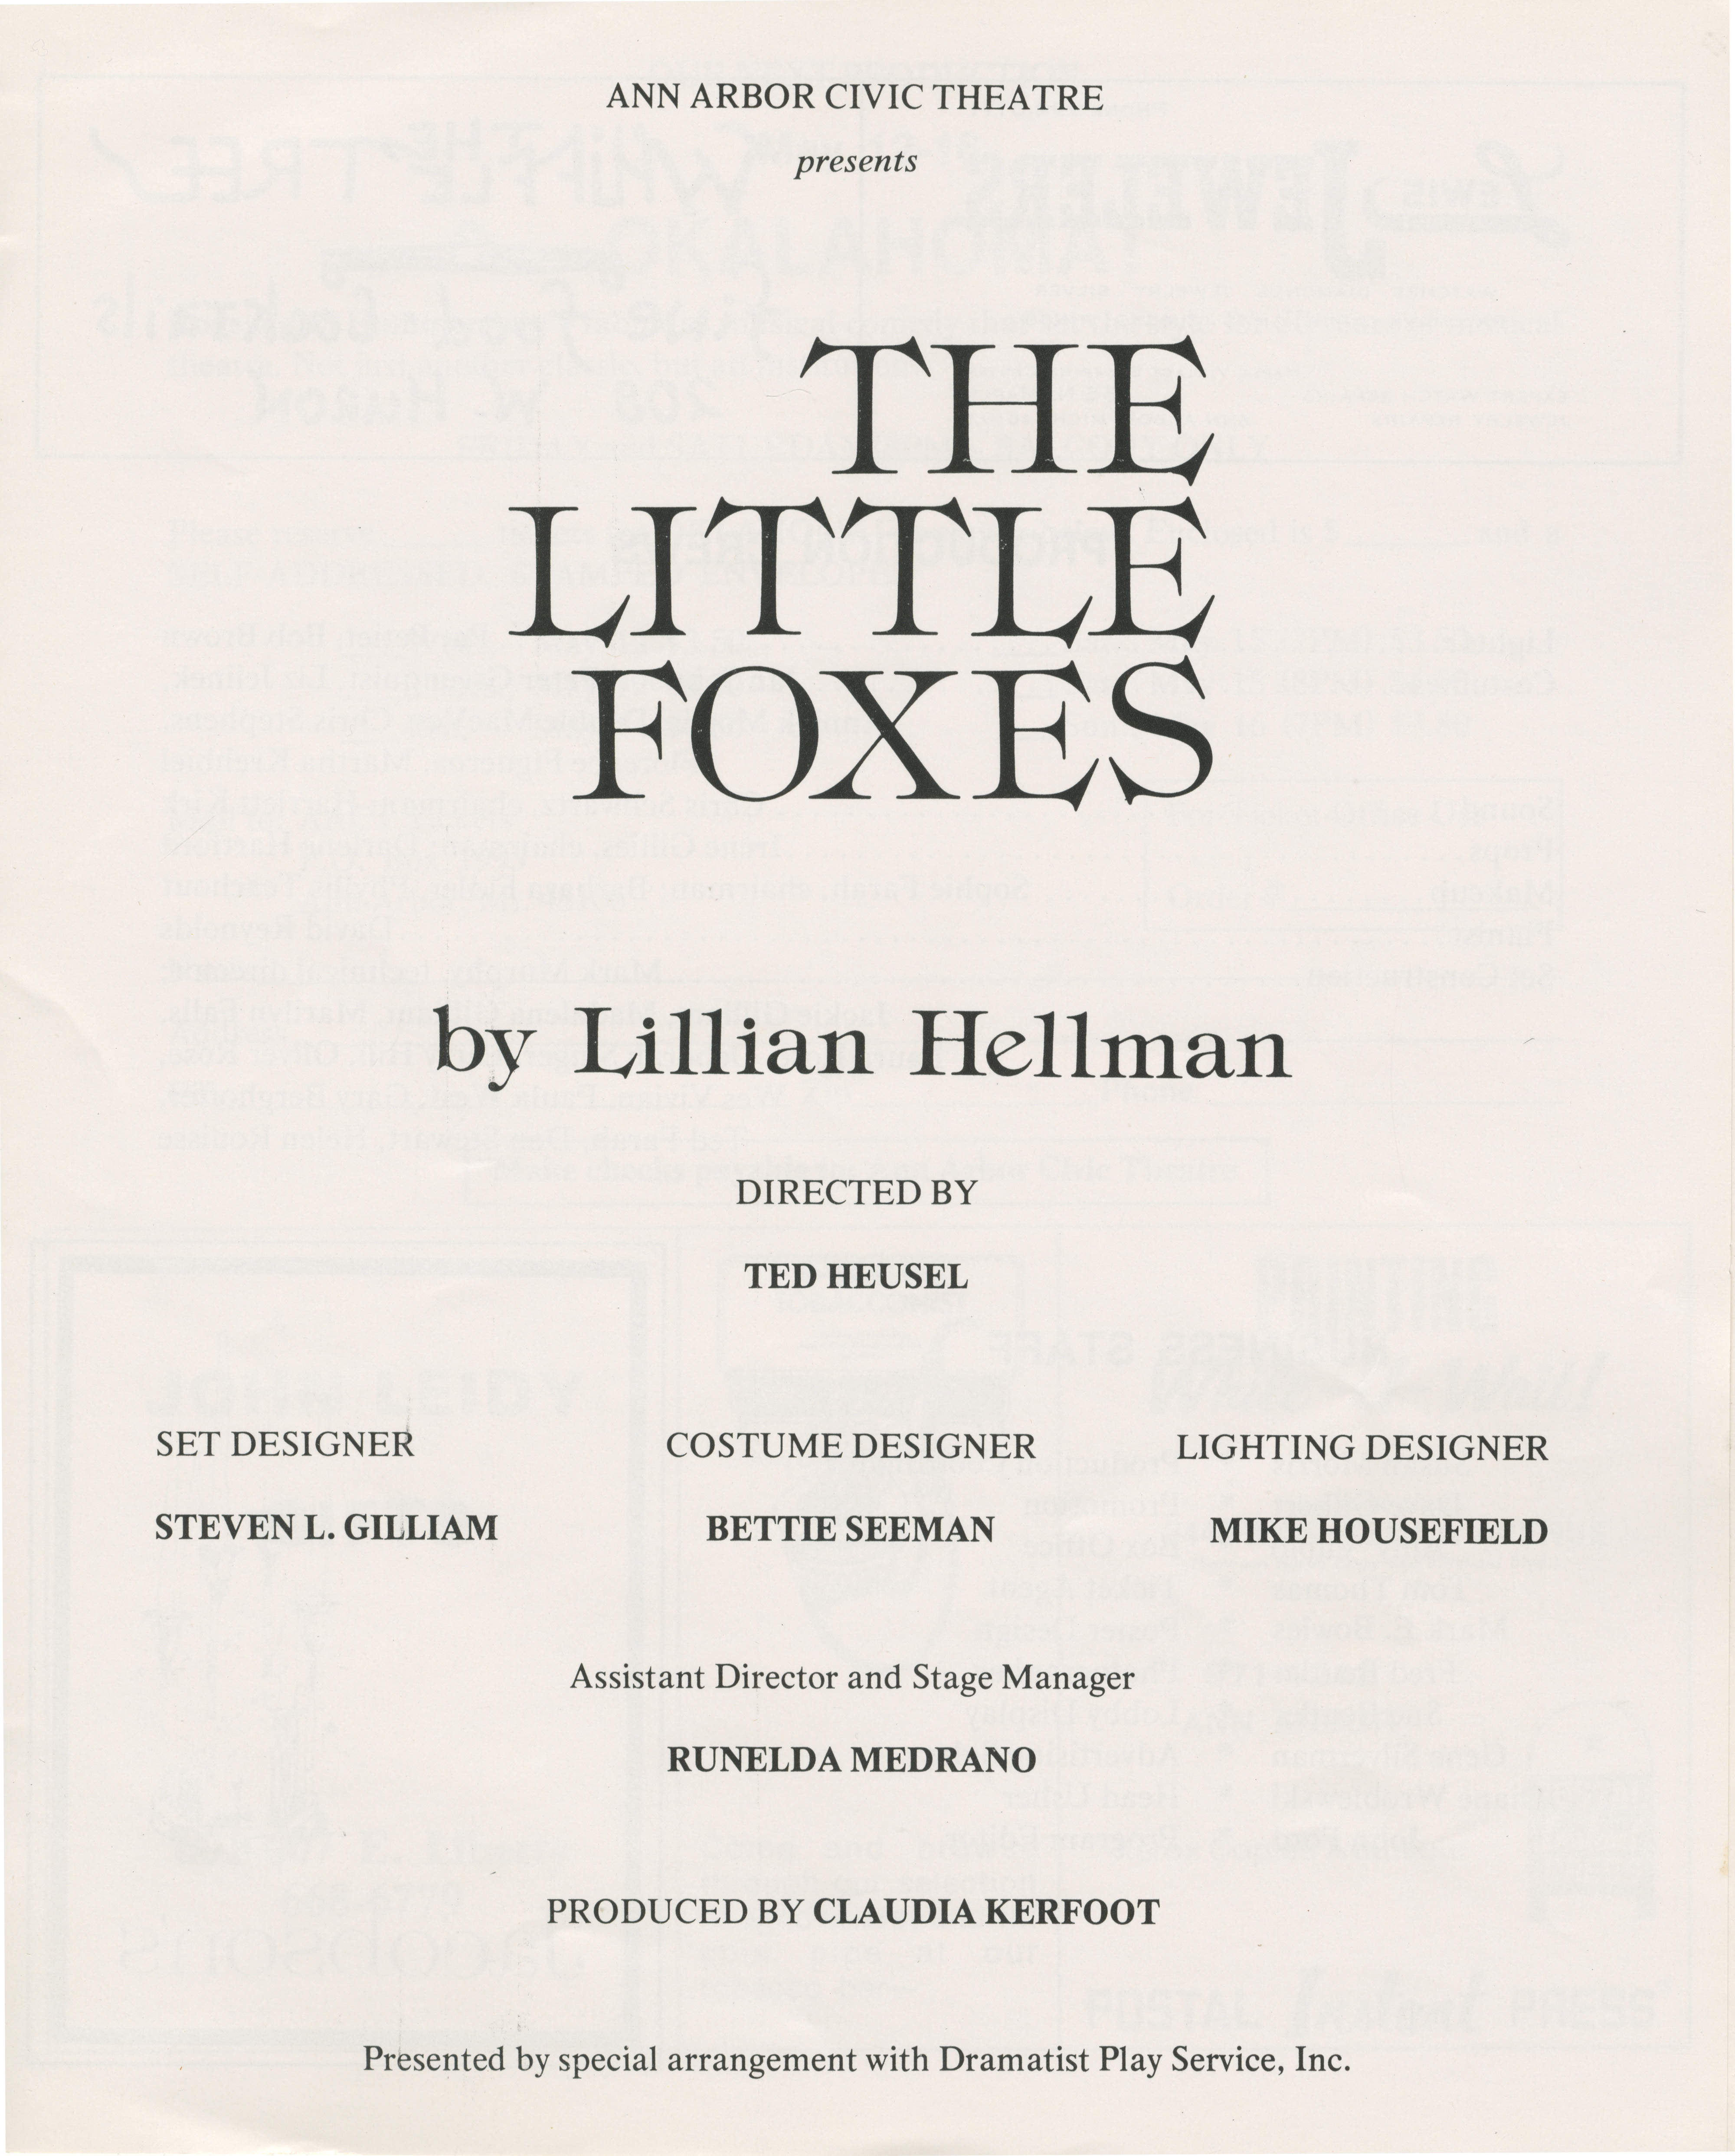 Ann Arbor Civic Theatre Program: The Little Foxes, March 23, 1976 image